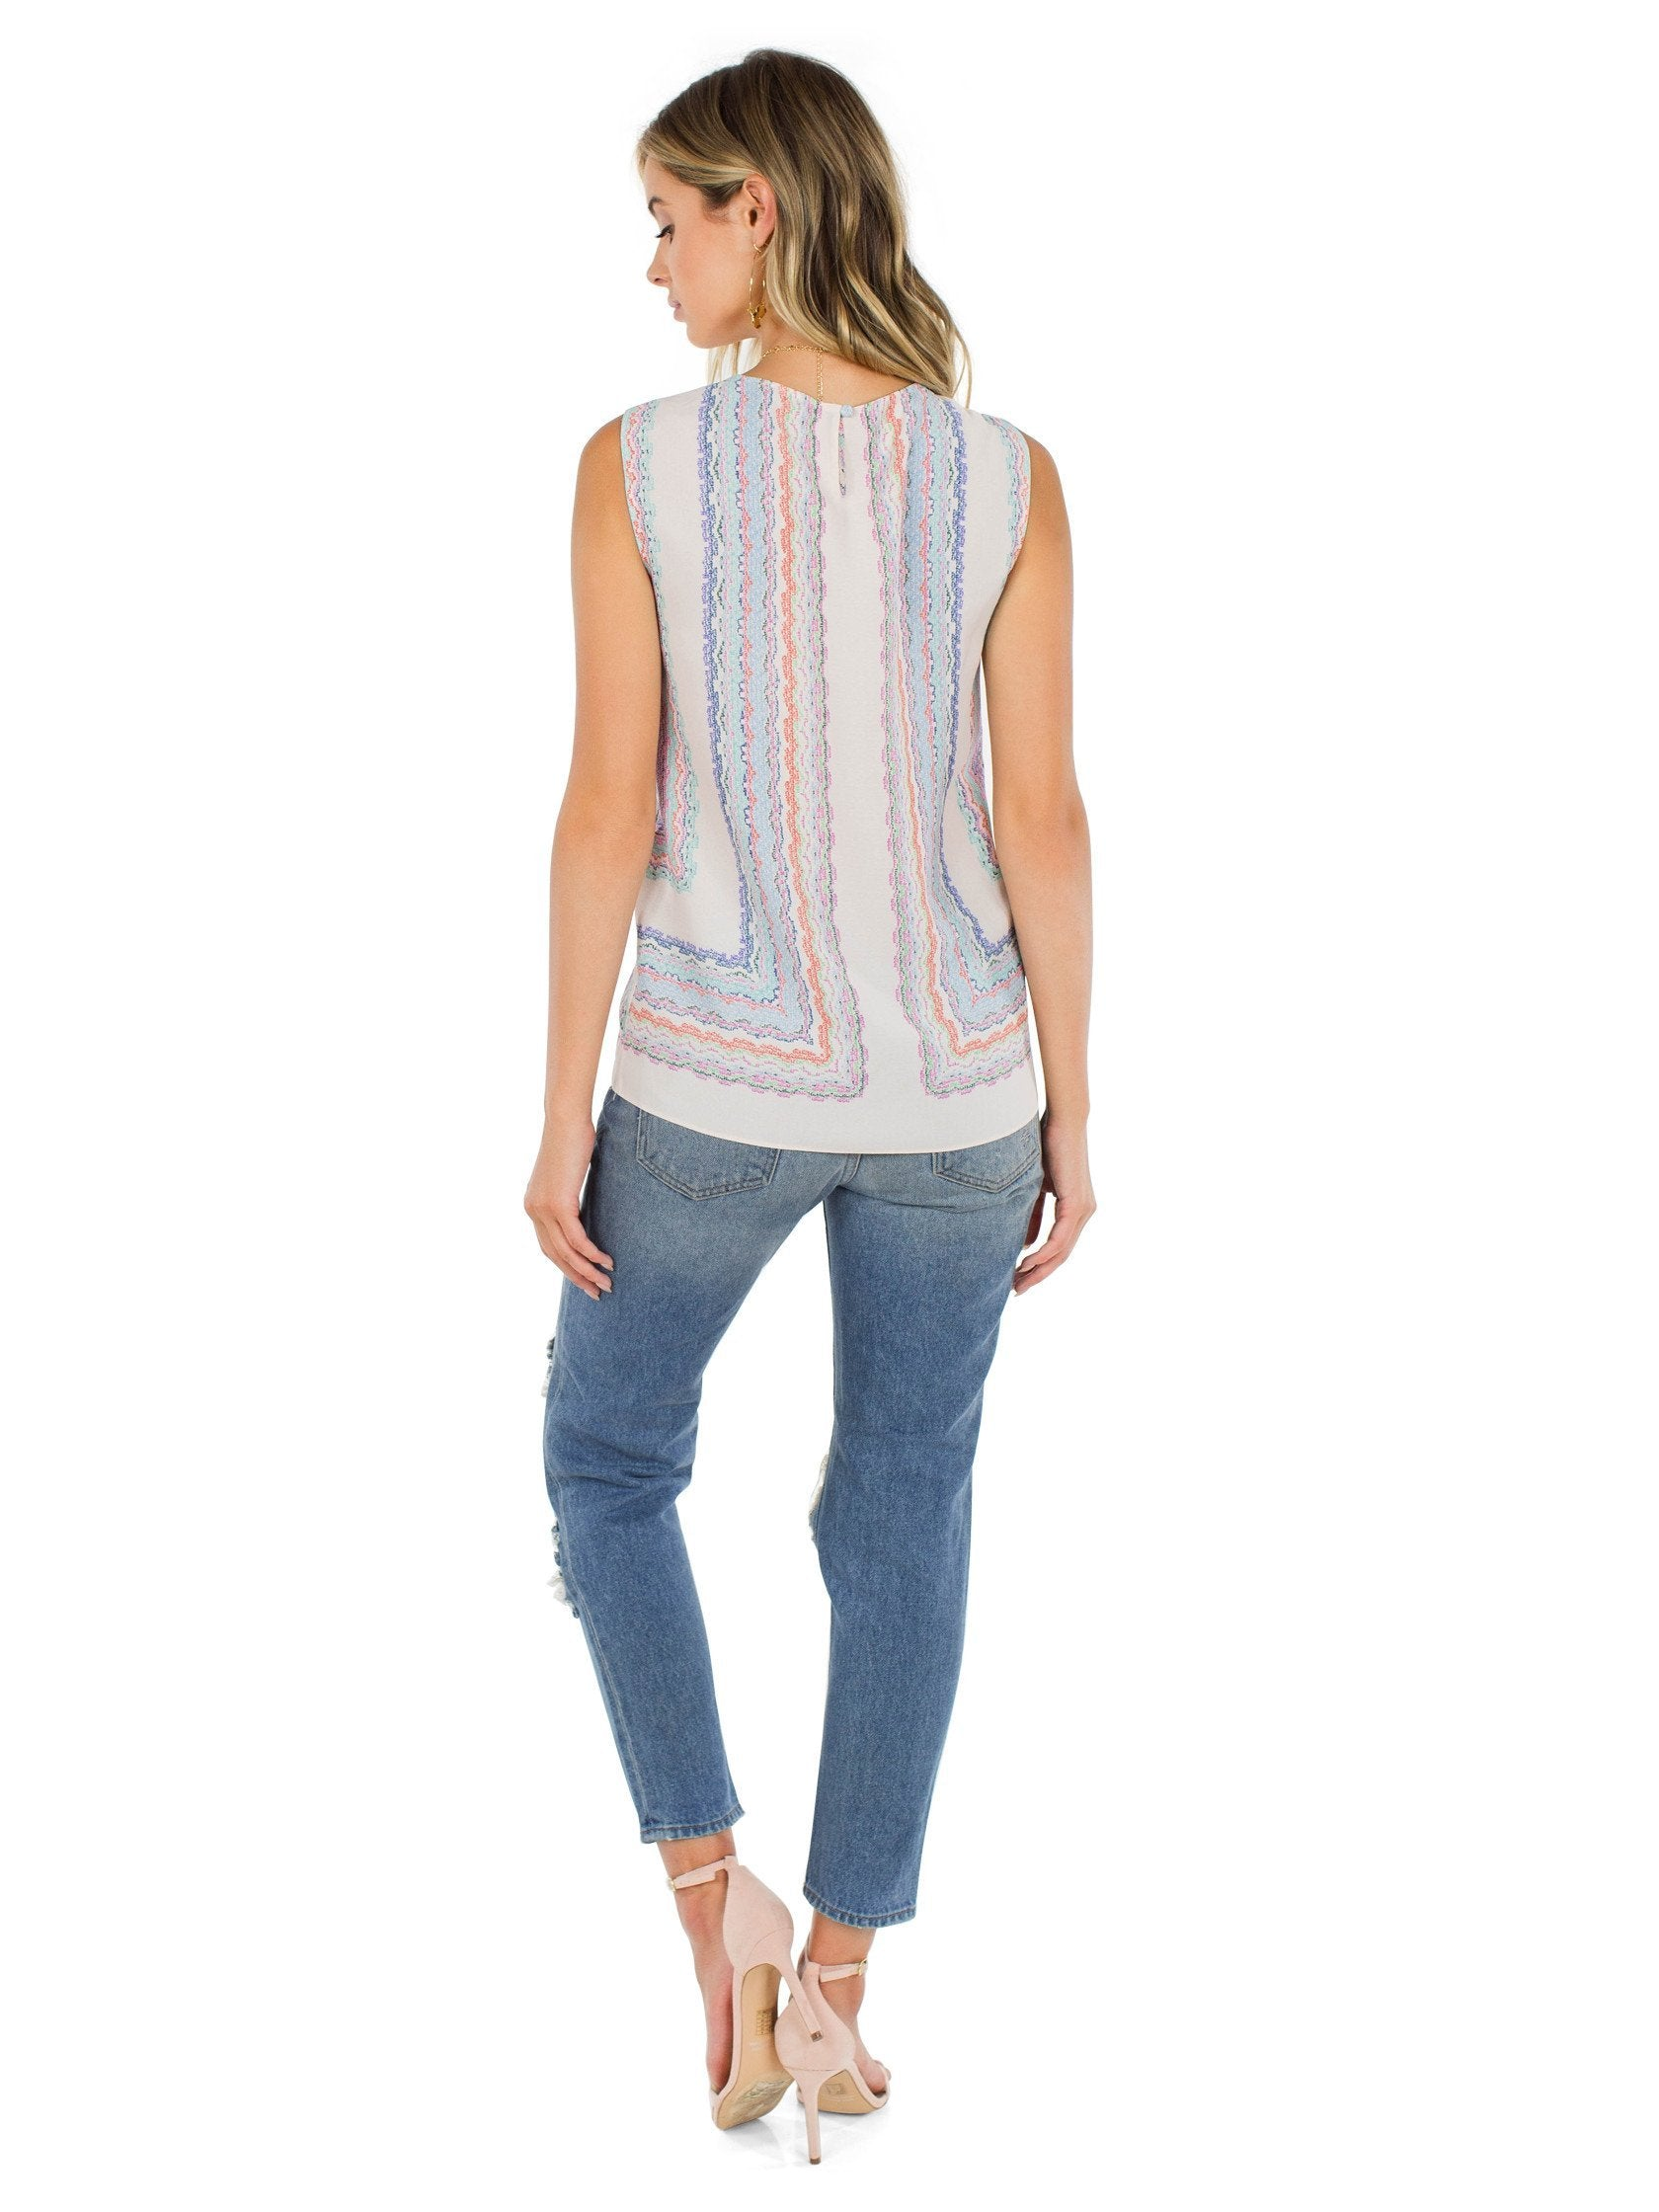 Women outfit in a top rental from BCBGMAXAZRIA called Maryssa Wrap Tank